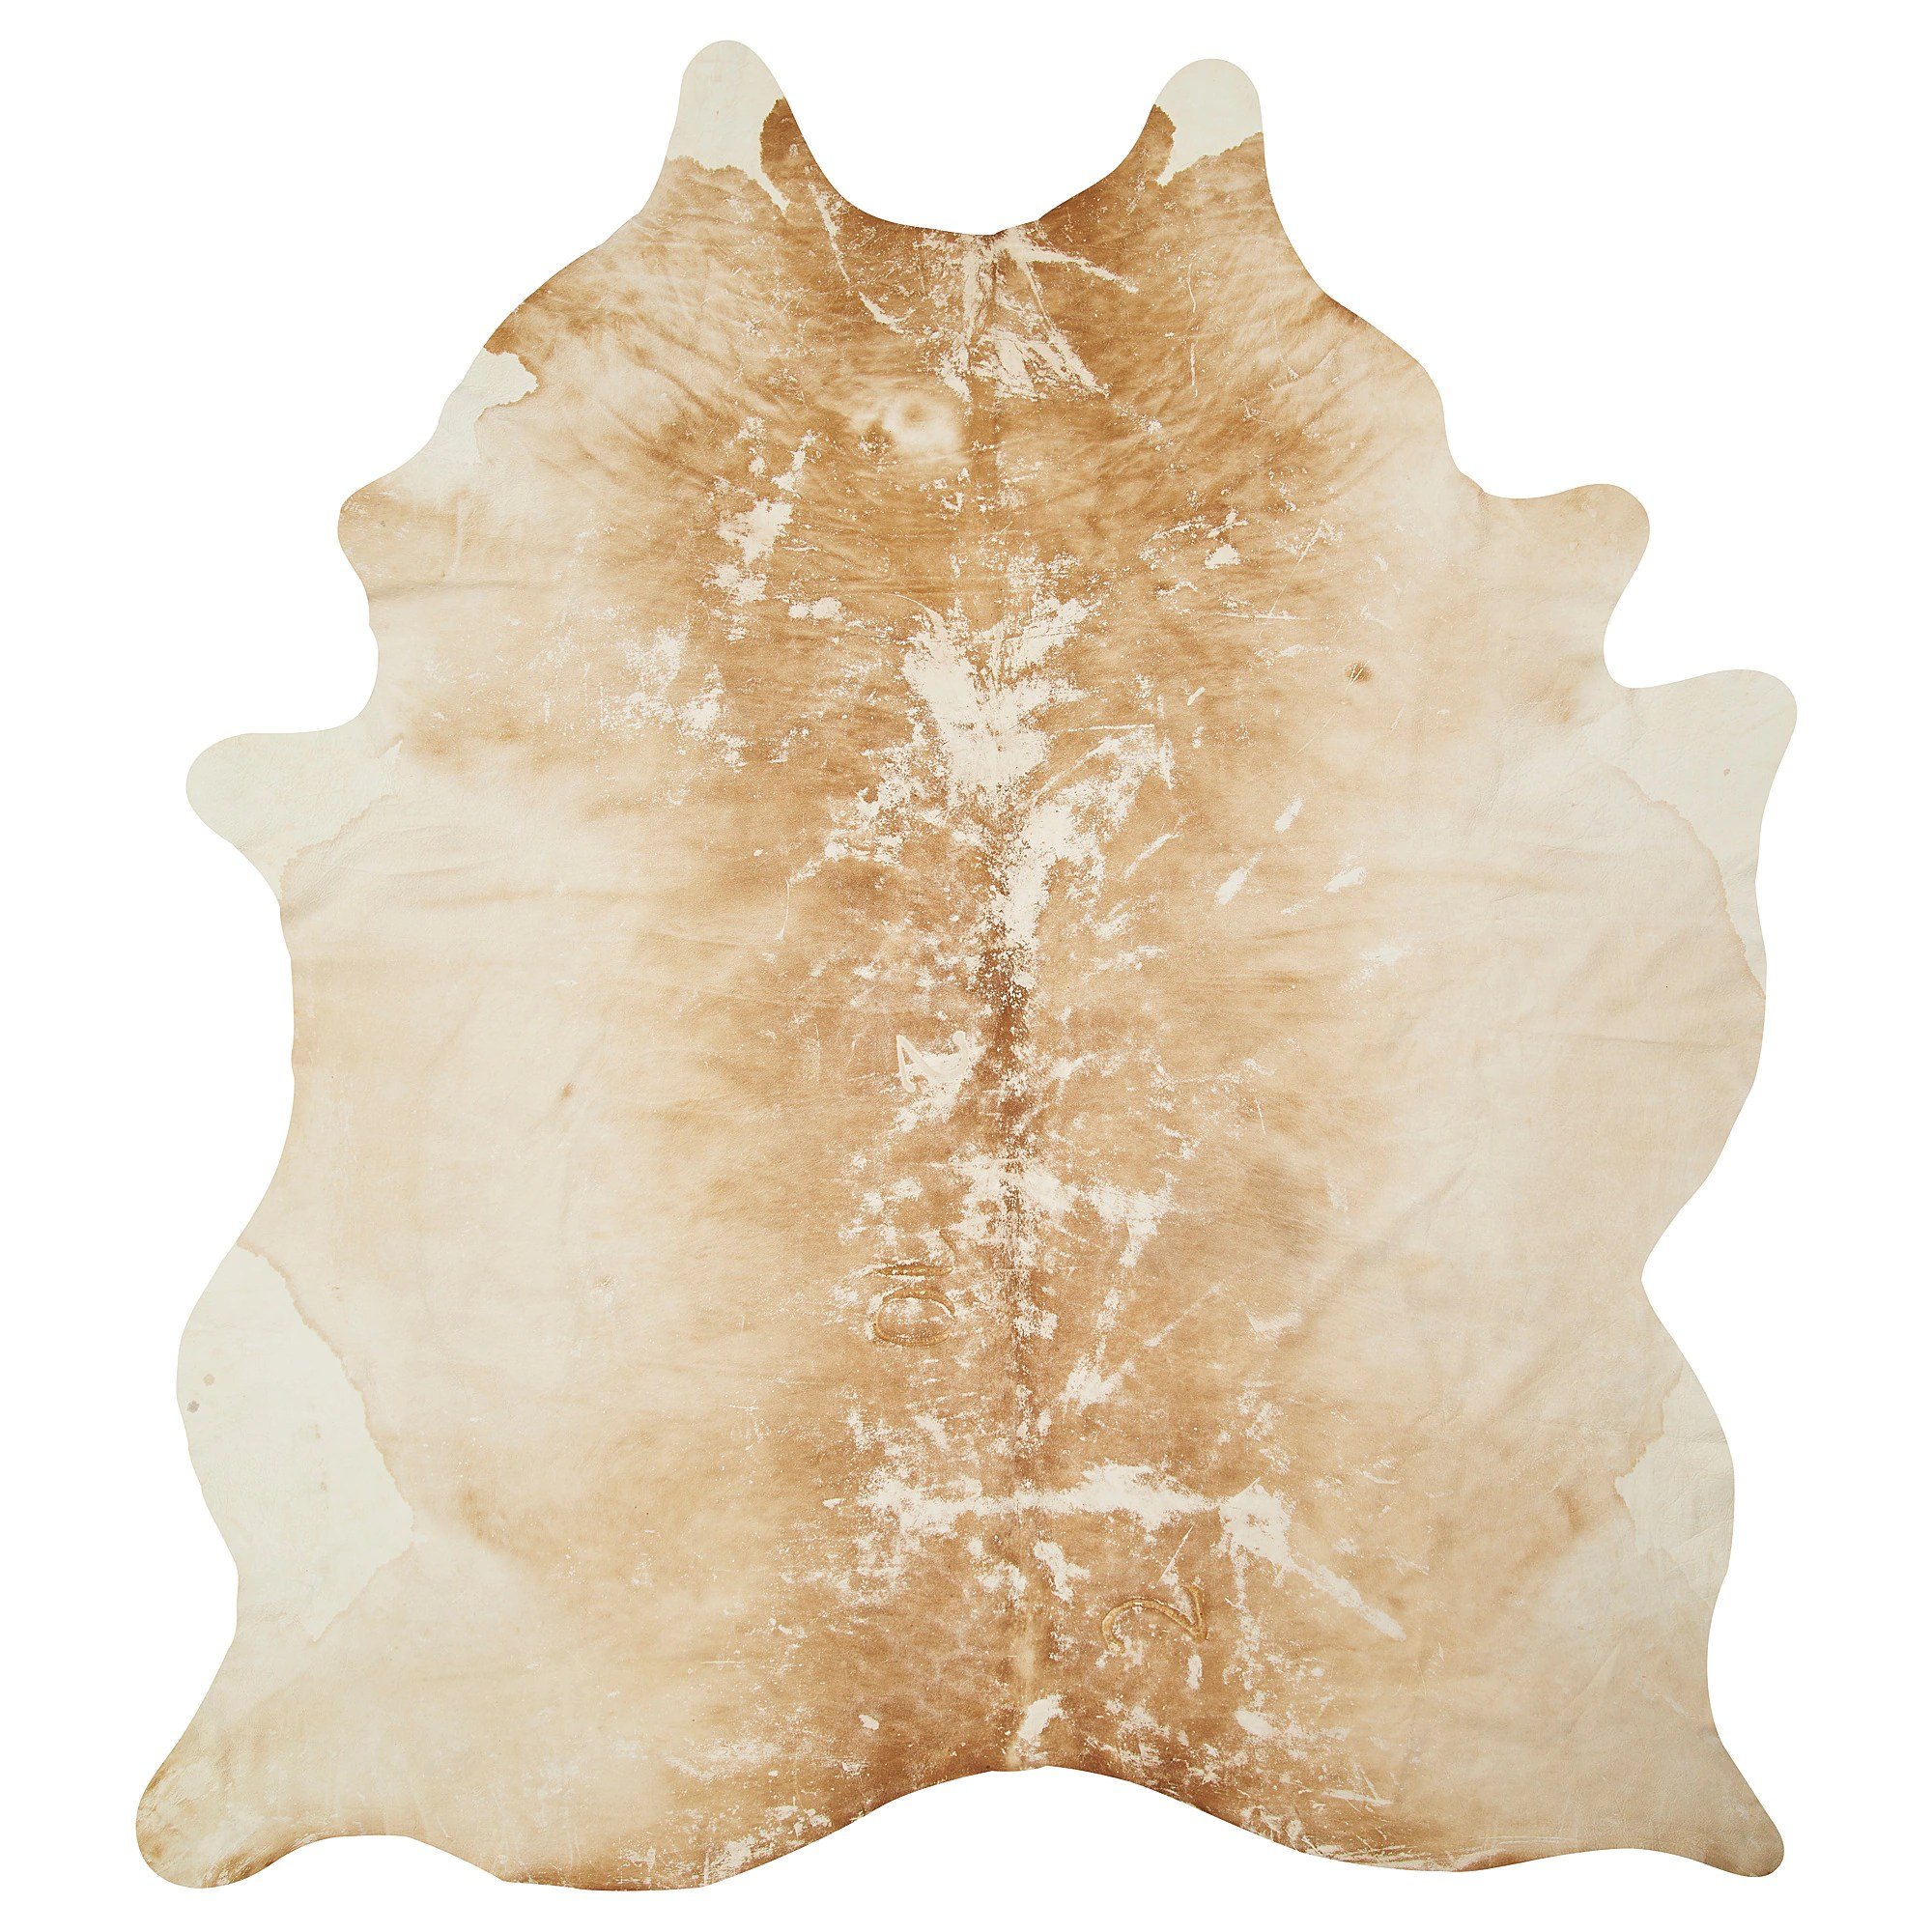 Ikea Cowhide Rug Torsted Cowhide Worn